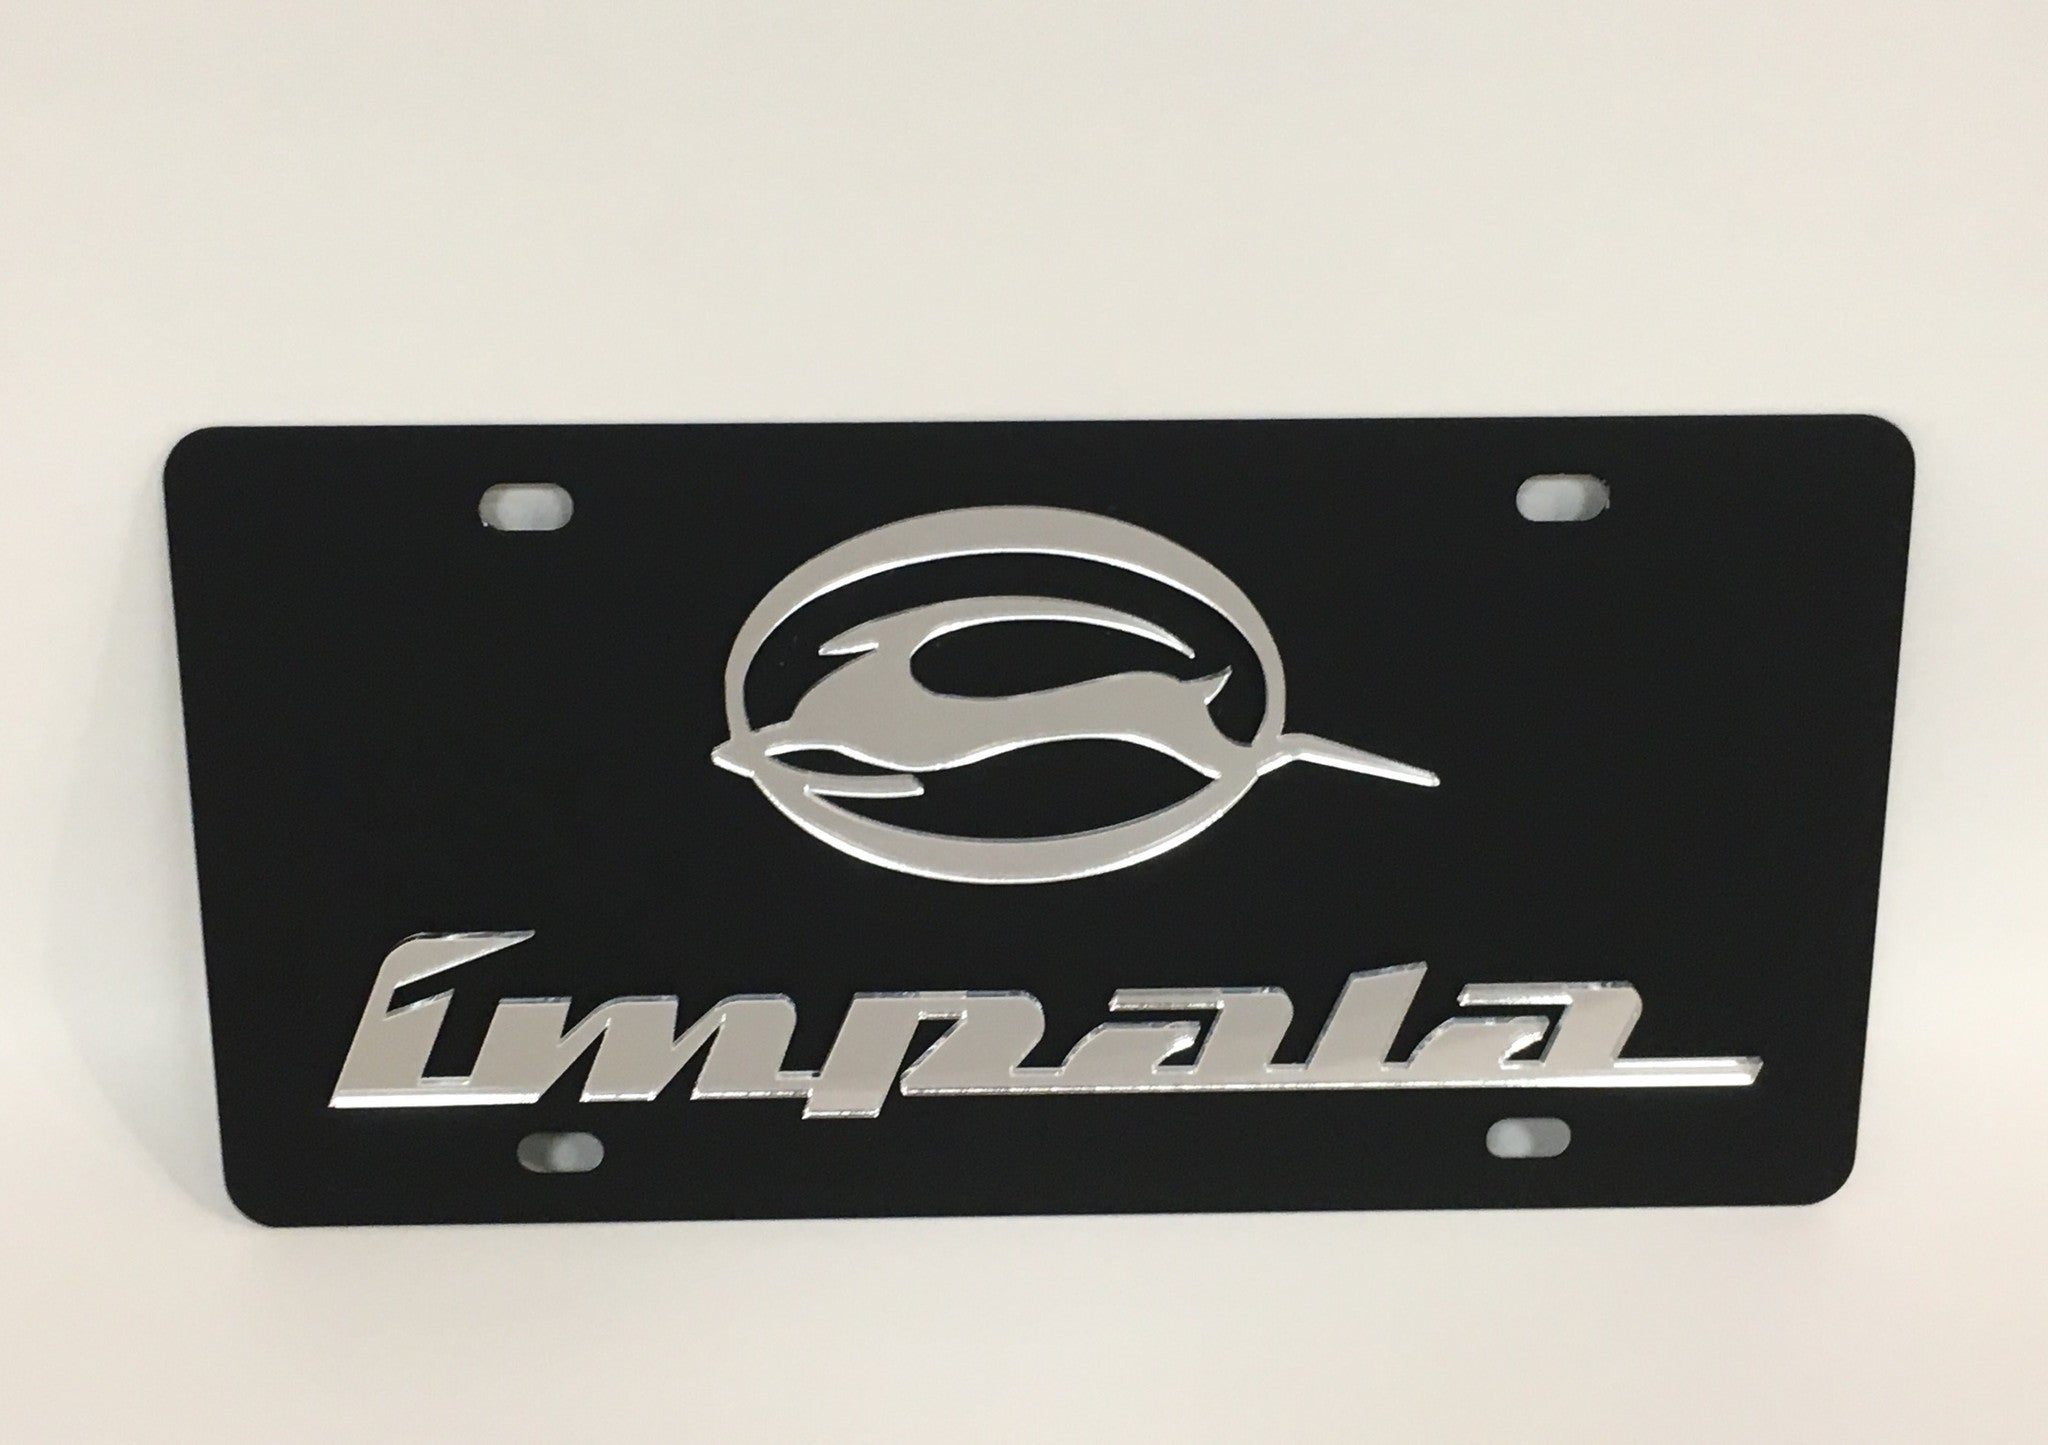 Chevy Impala Black Stainless Steel License Plate